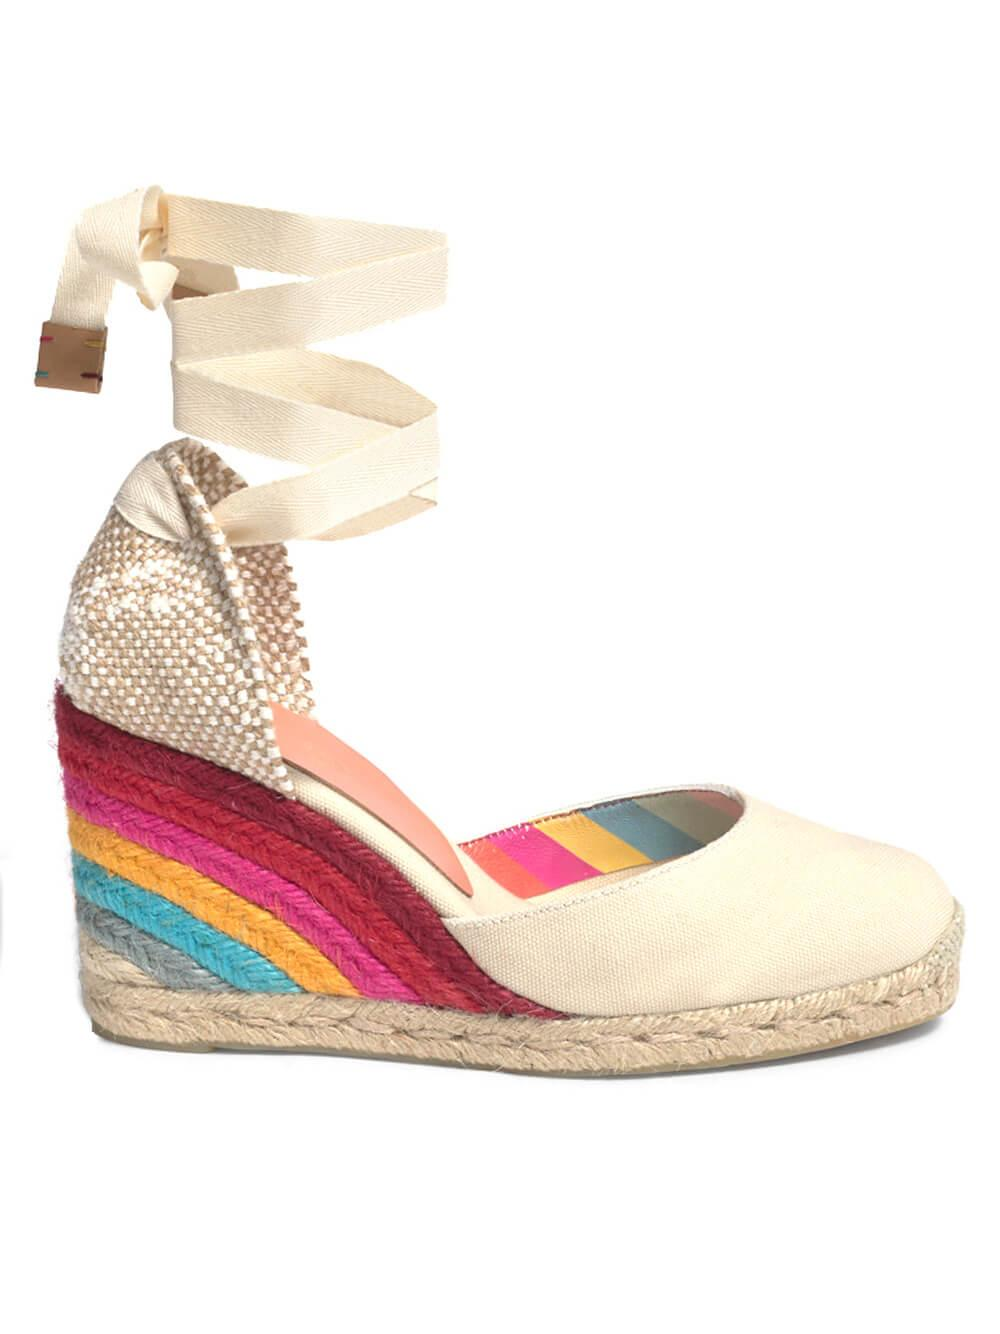 Carina Canvas Wedge Item # CARINA-PS/8/001